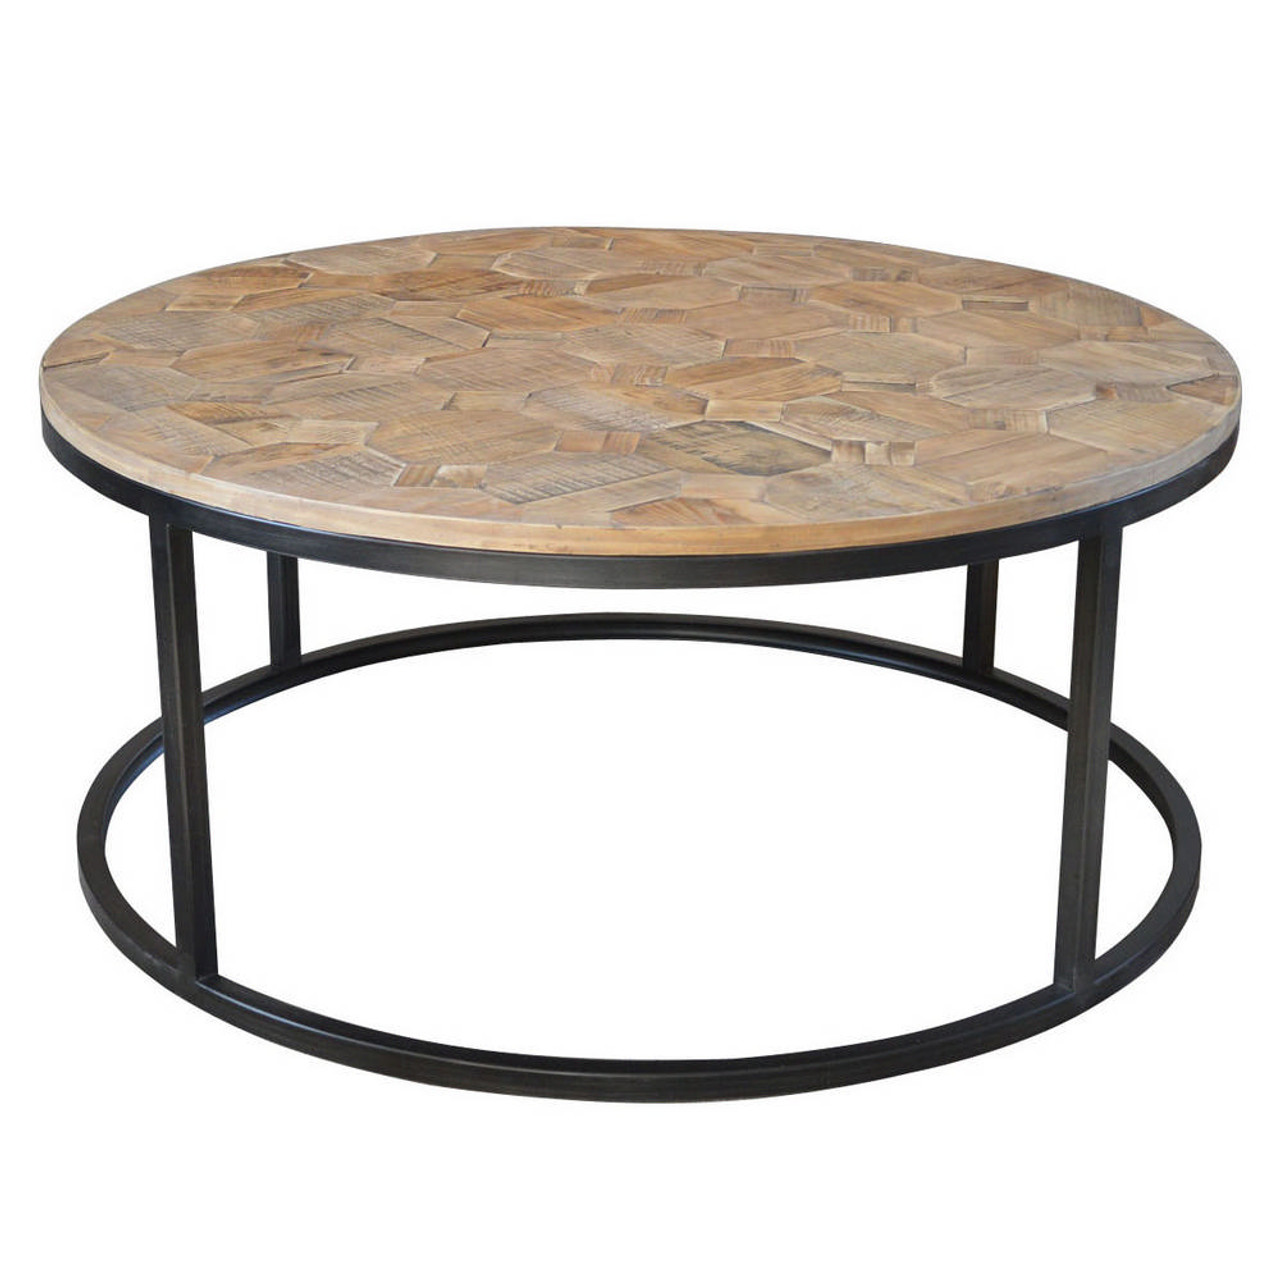 Picture of: Wisconsin Round Coffee Table Parquet Top Maison Living